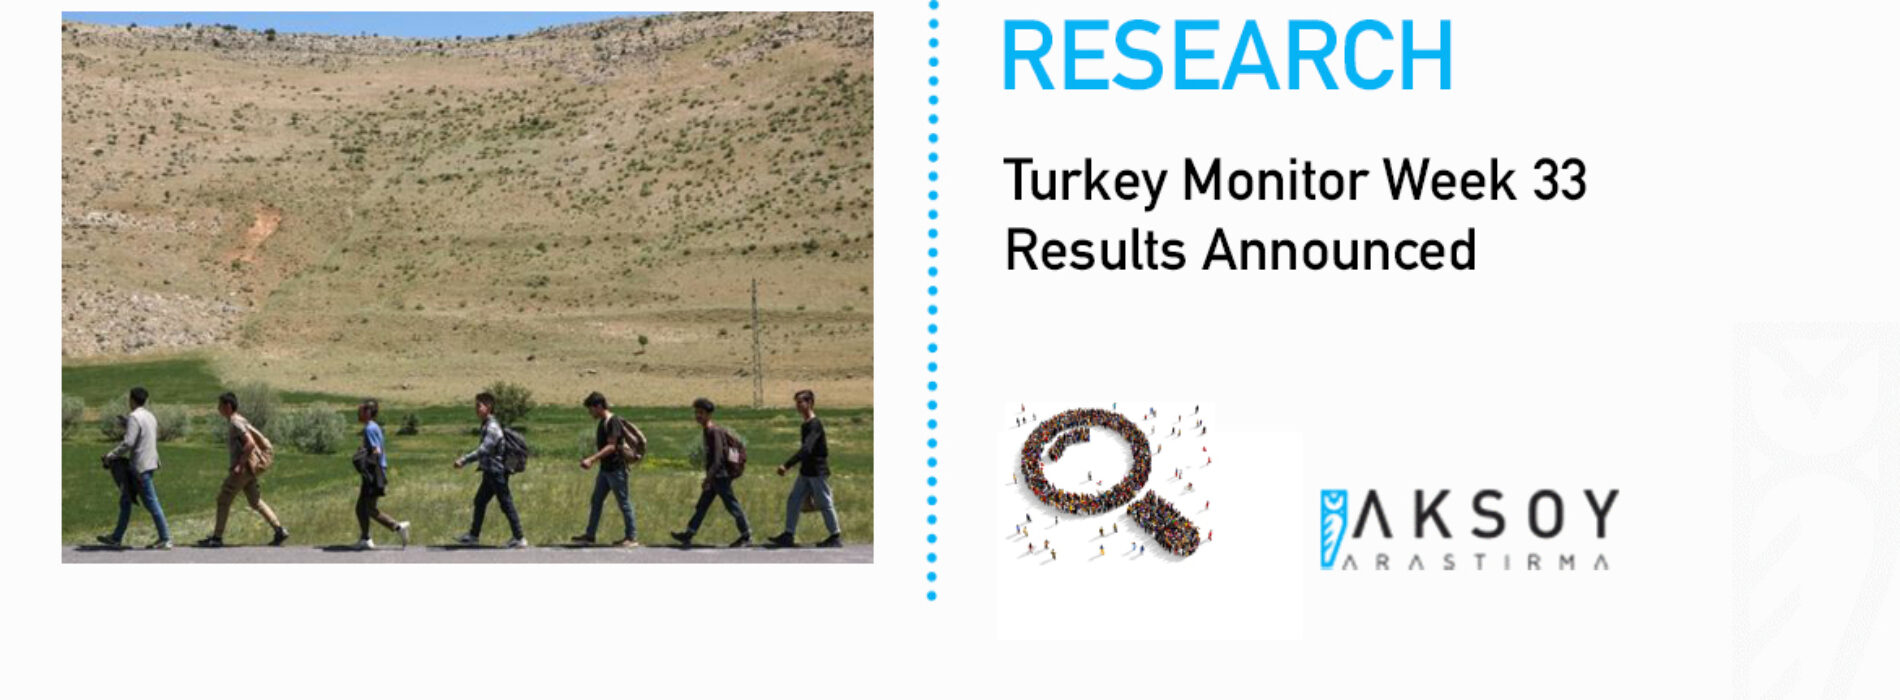 Turkey Monitor Week 33 Results Announced